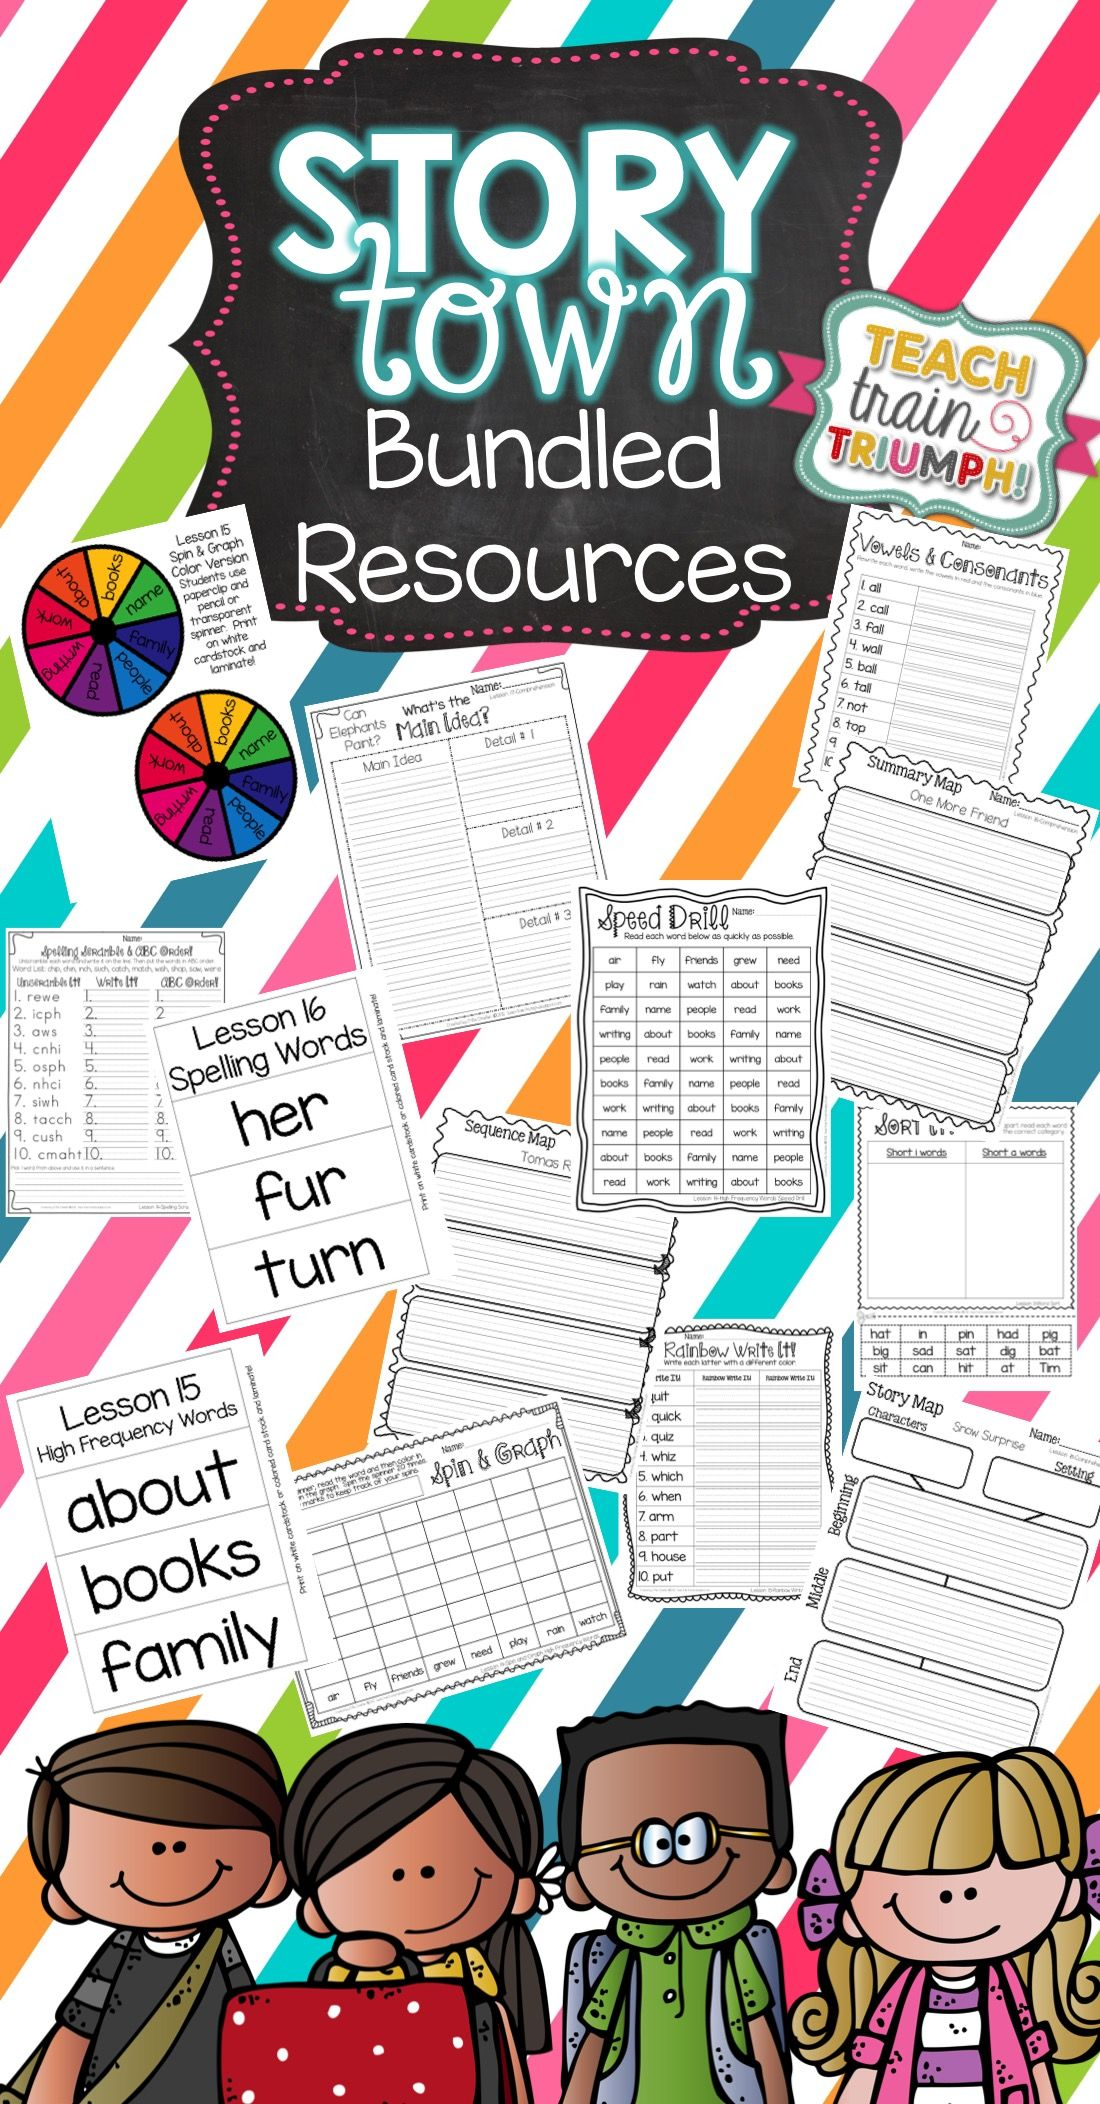 Story Town Grade 1 Resource Bundle With Images